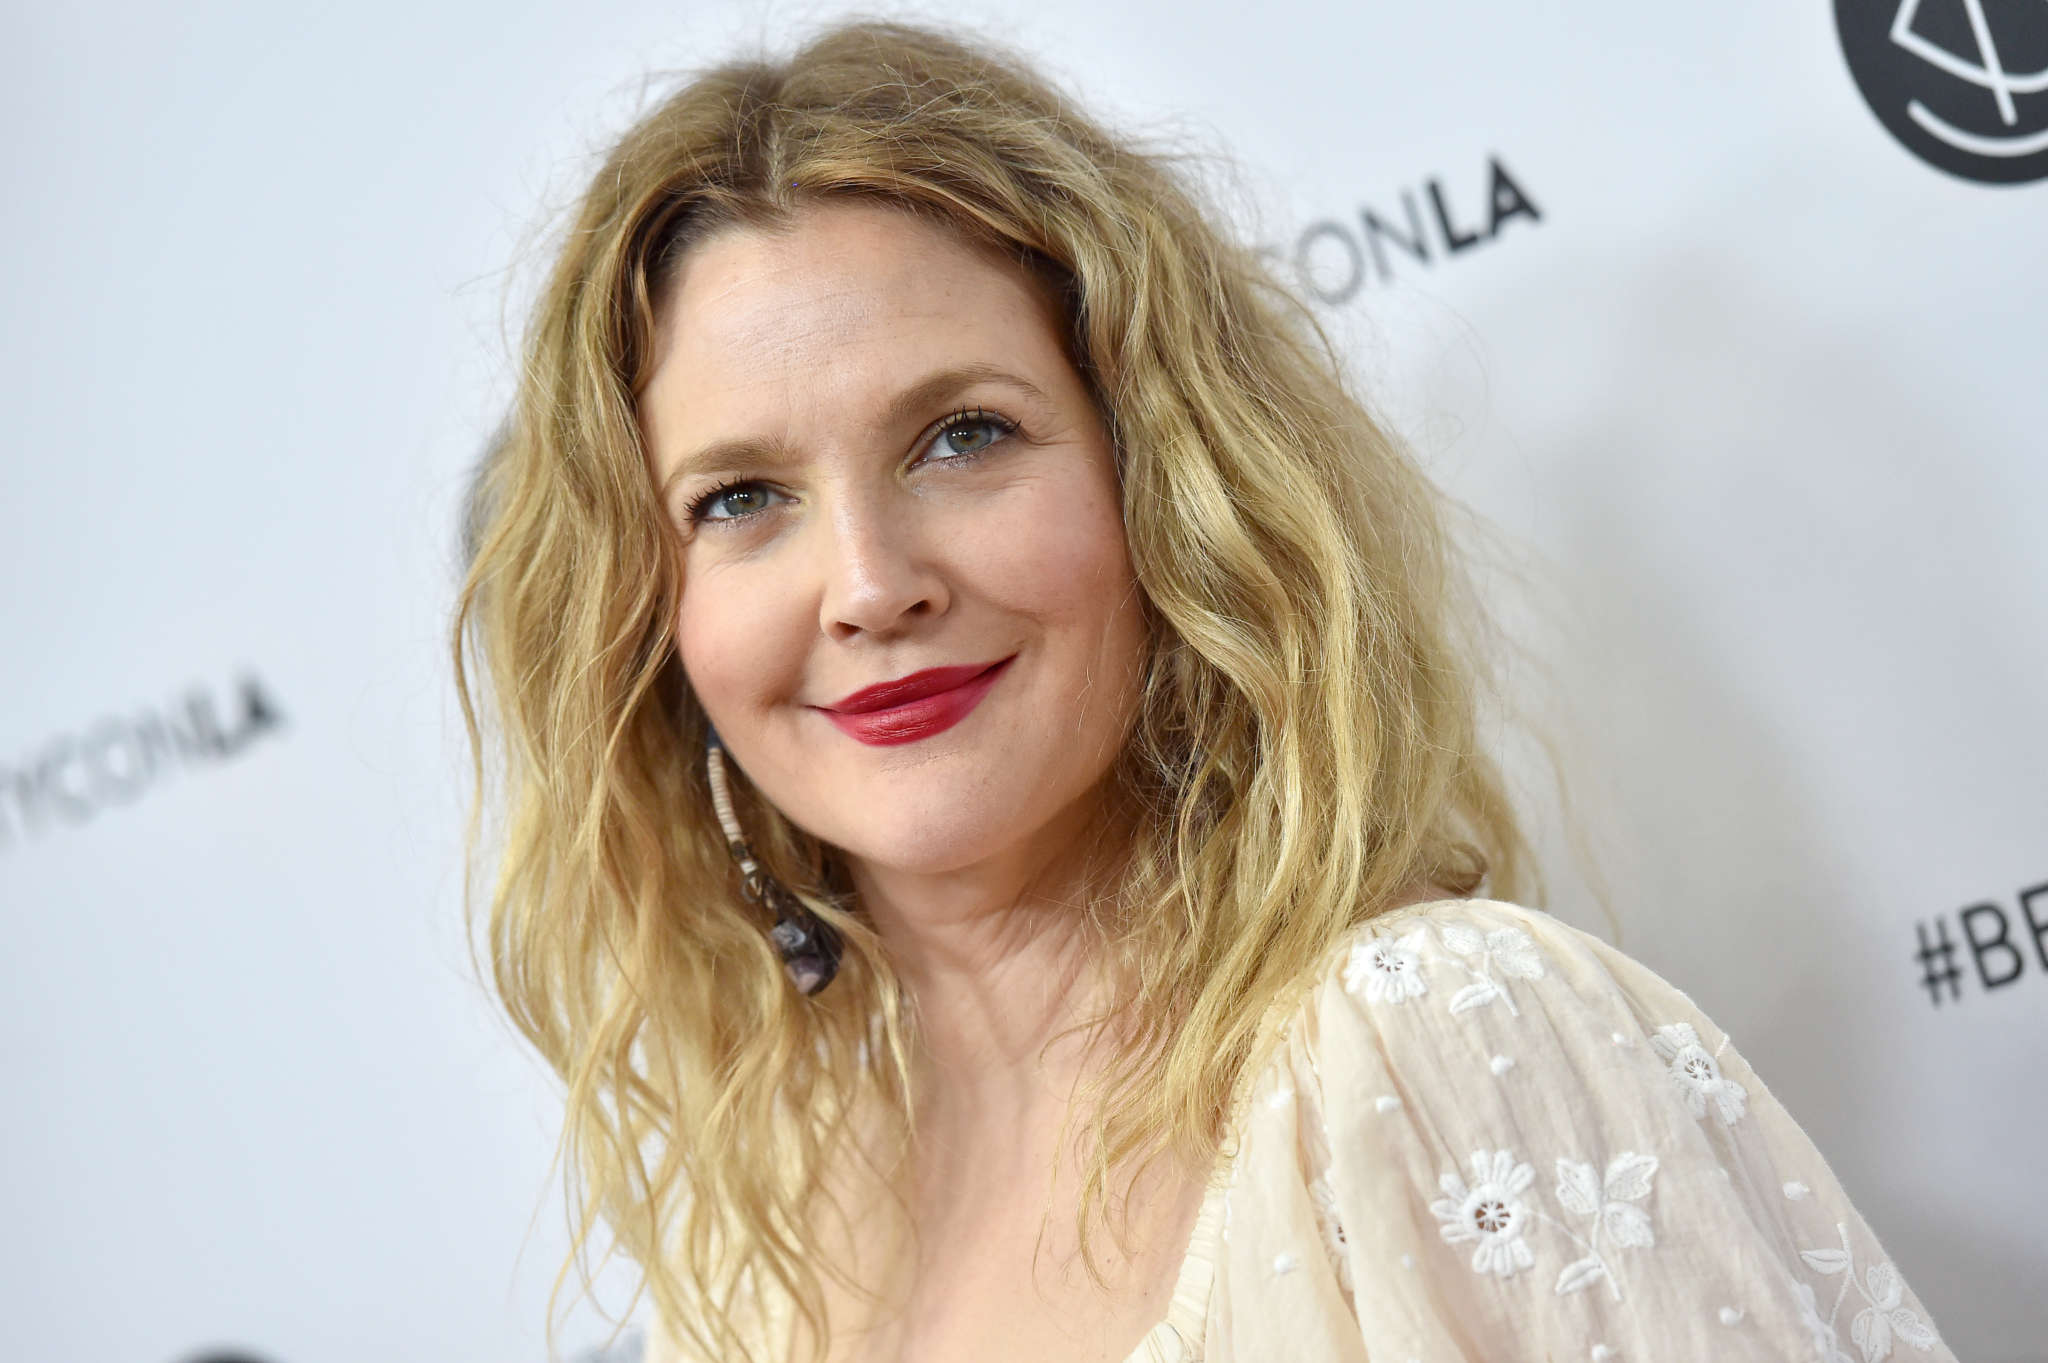 Drew Barrymore Says She Hasn't Had One Date Since Her Divorce – Here's Why!